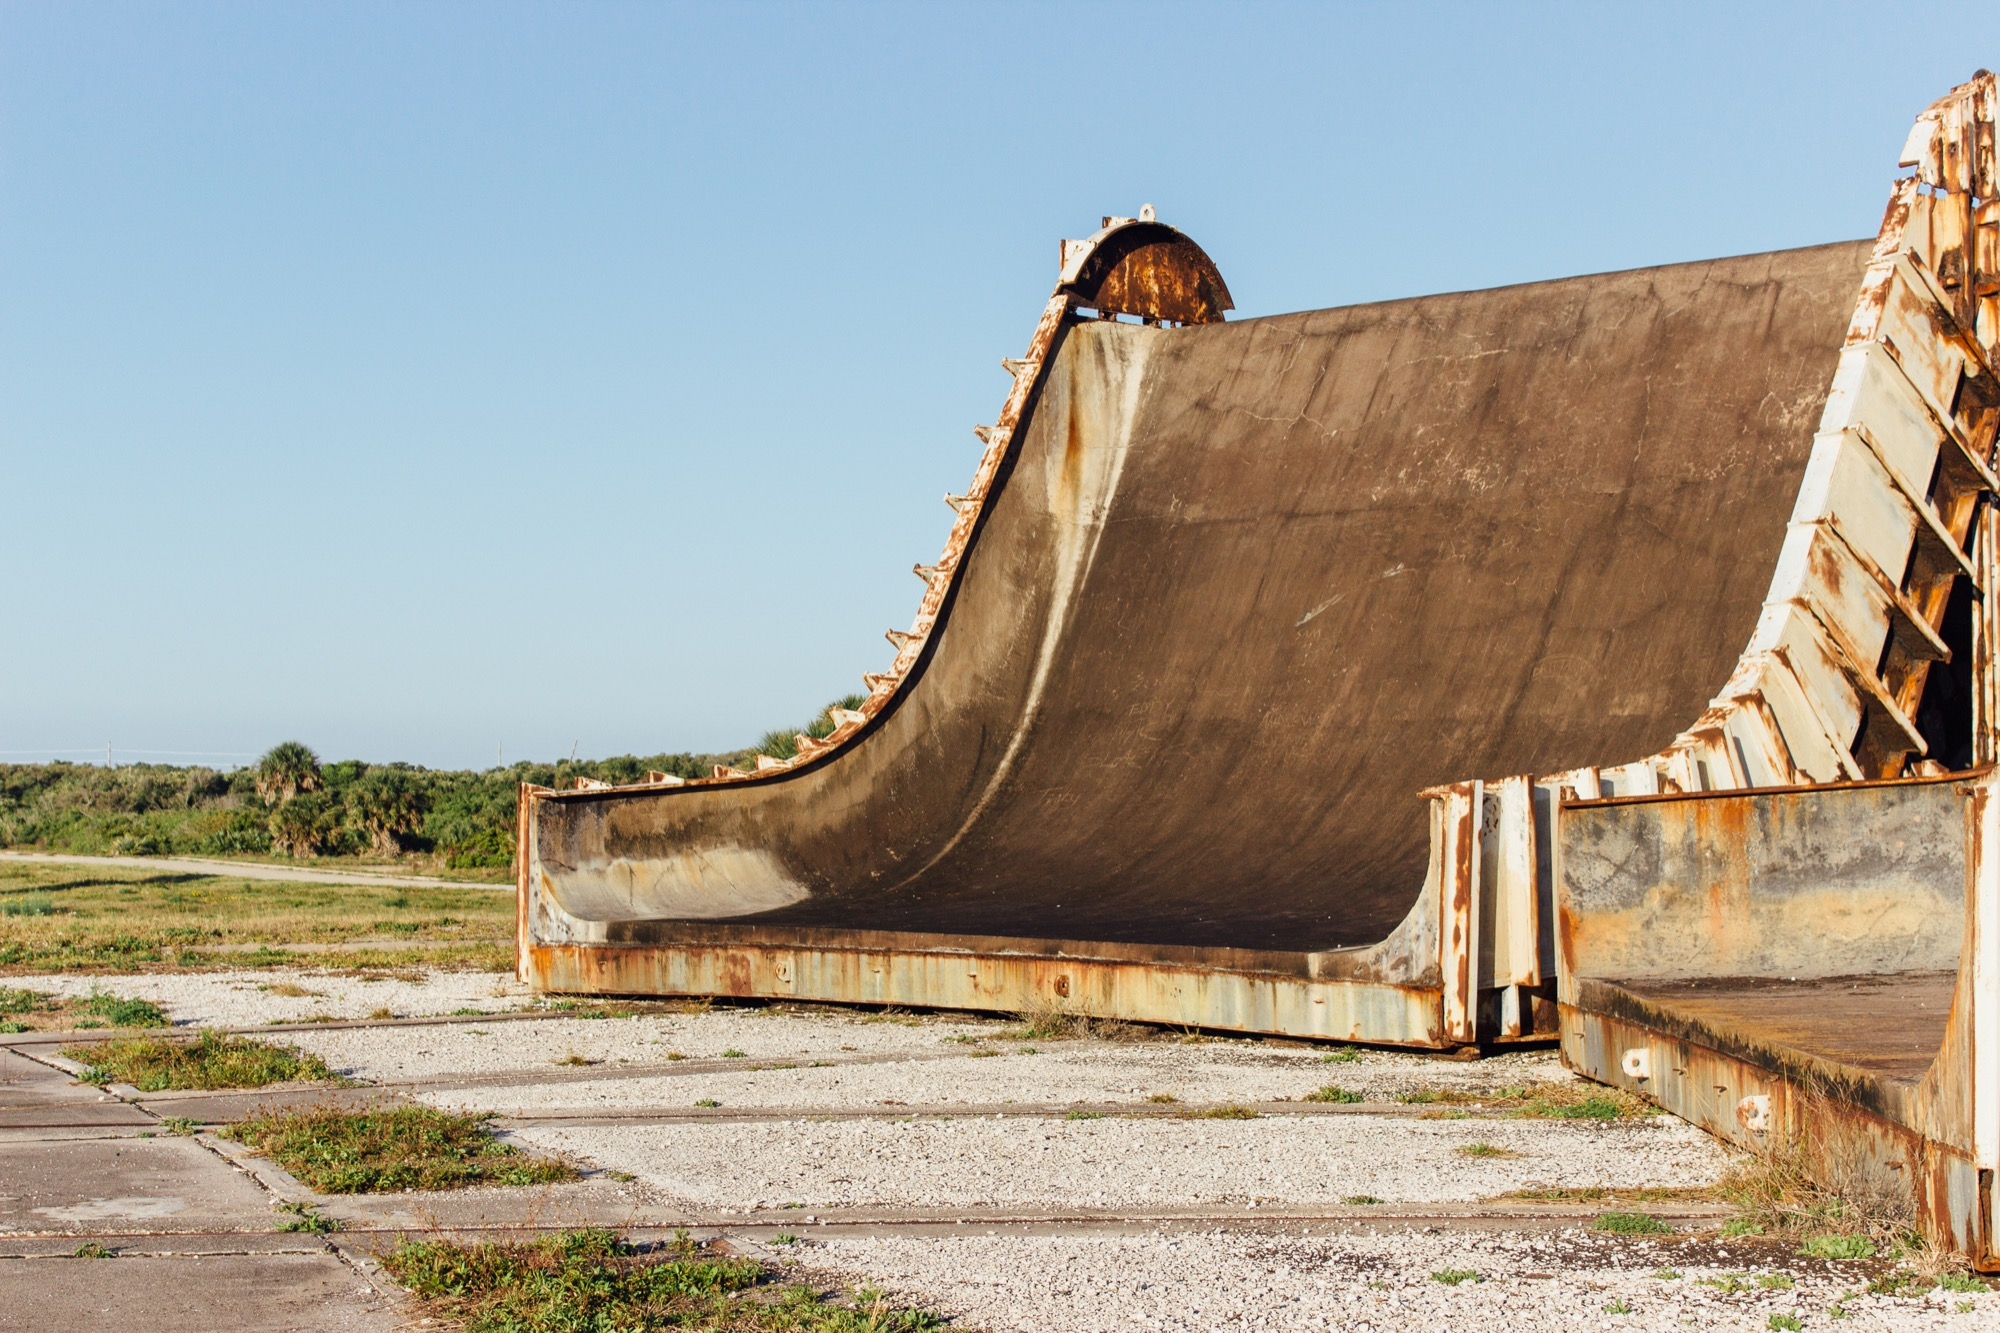 a rusting large concrete ramp structure